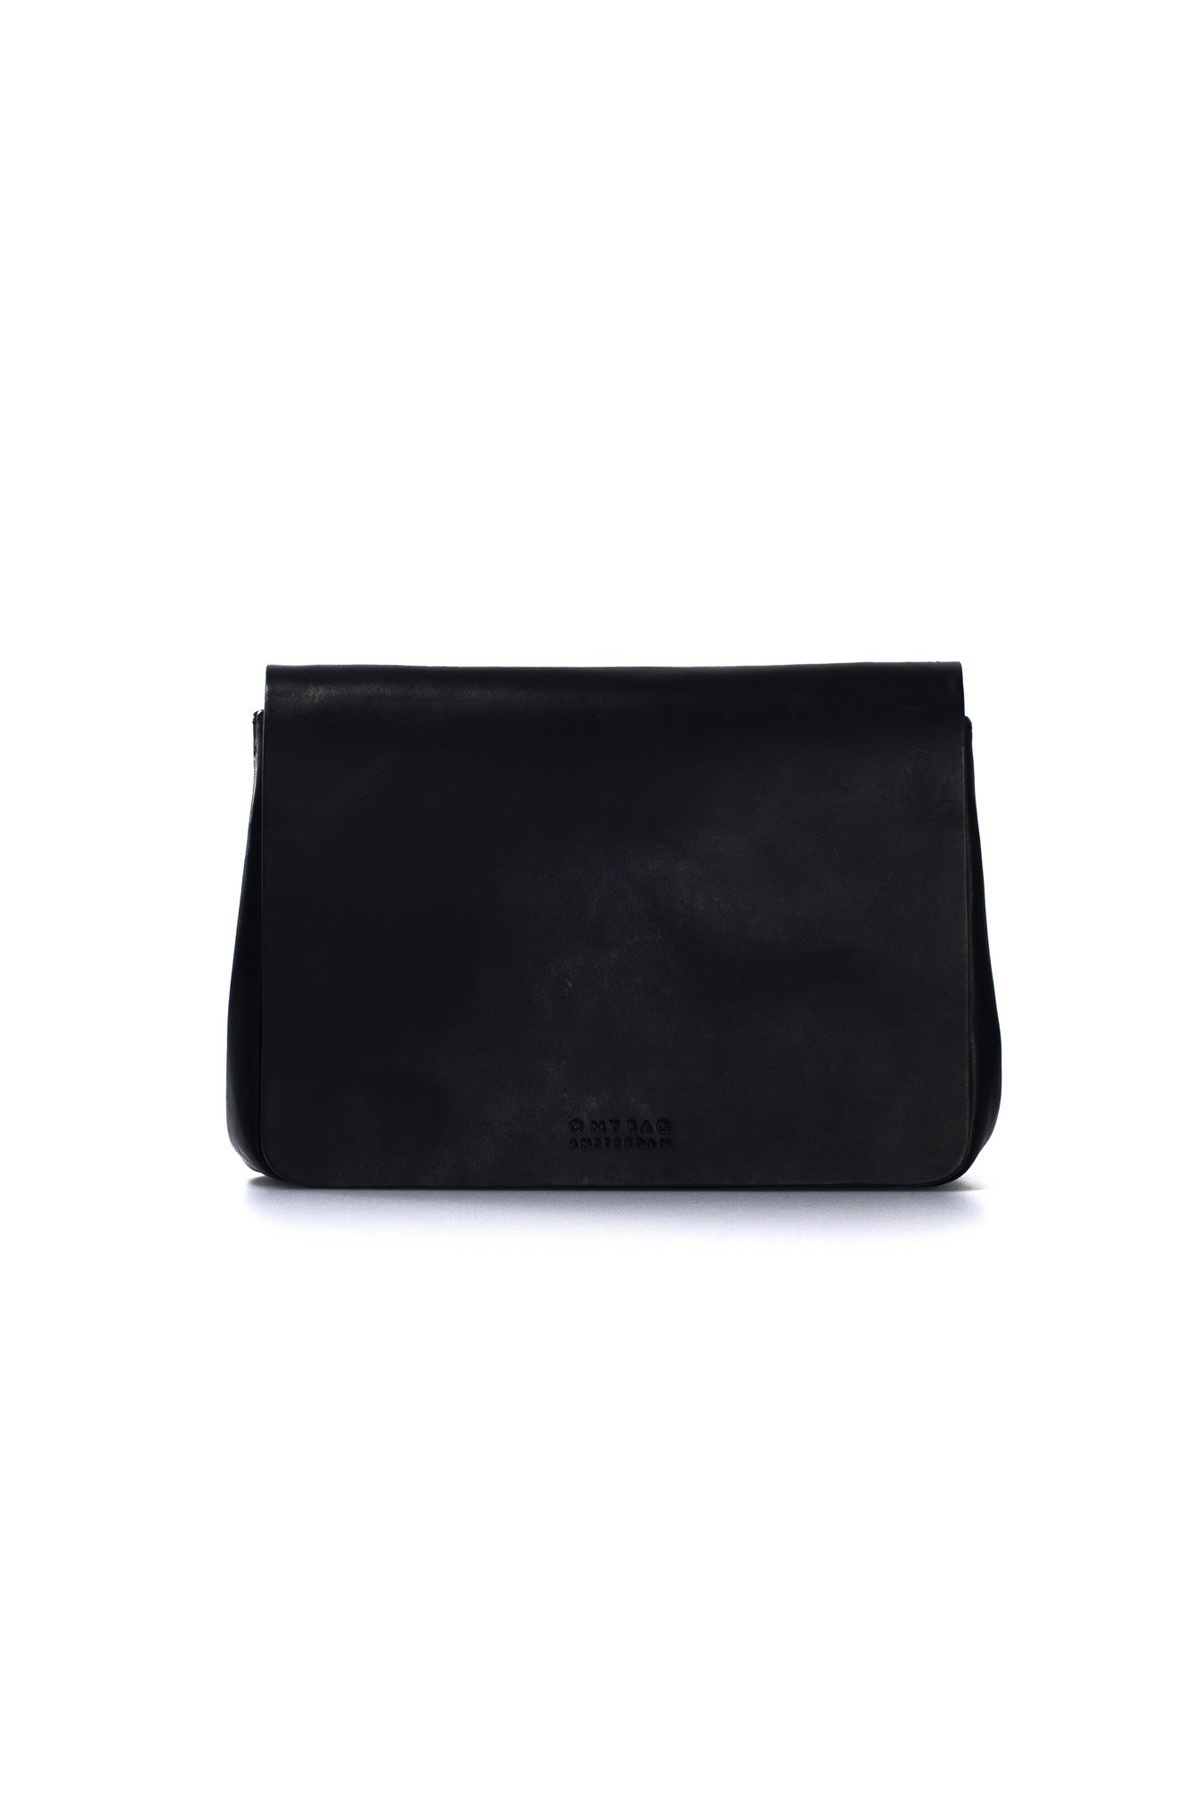 The Lucy Bag - Eco Black Classic Leather-1